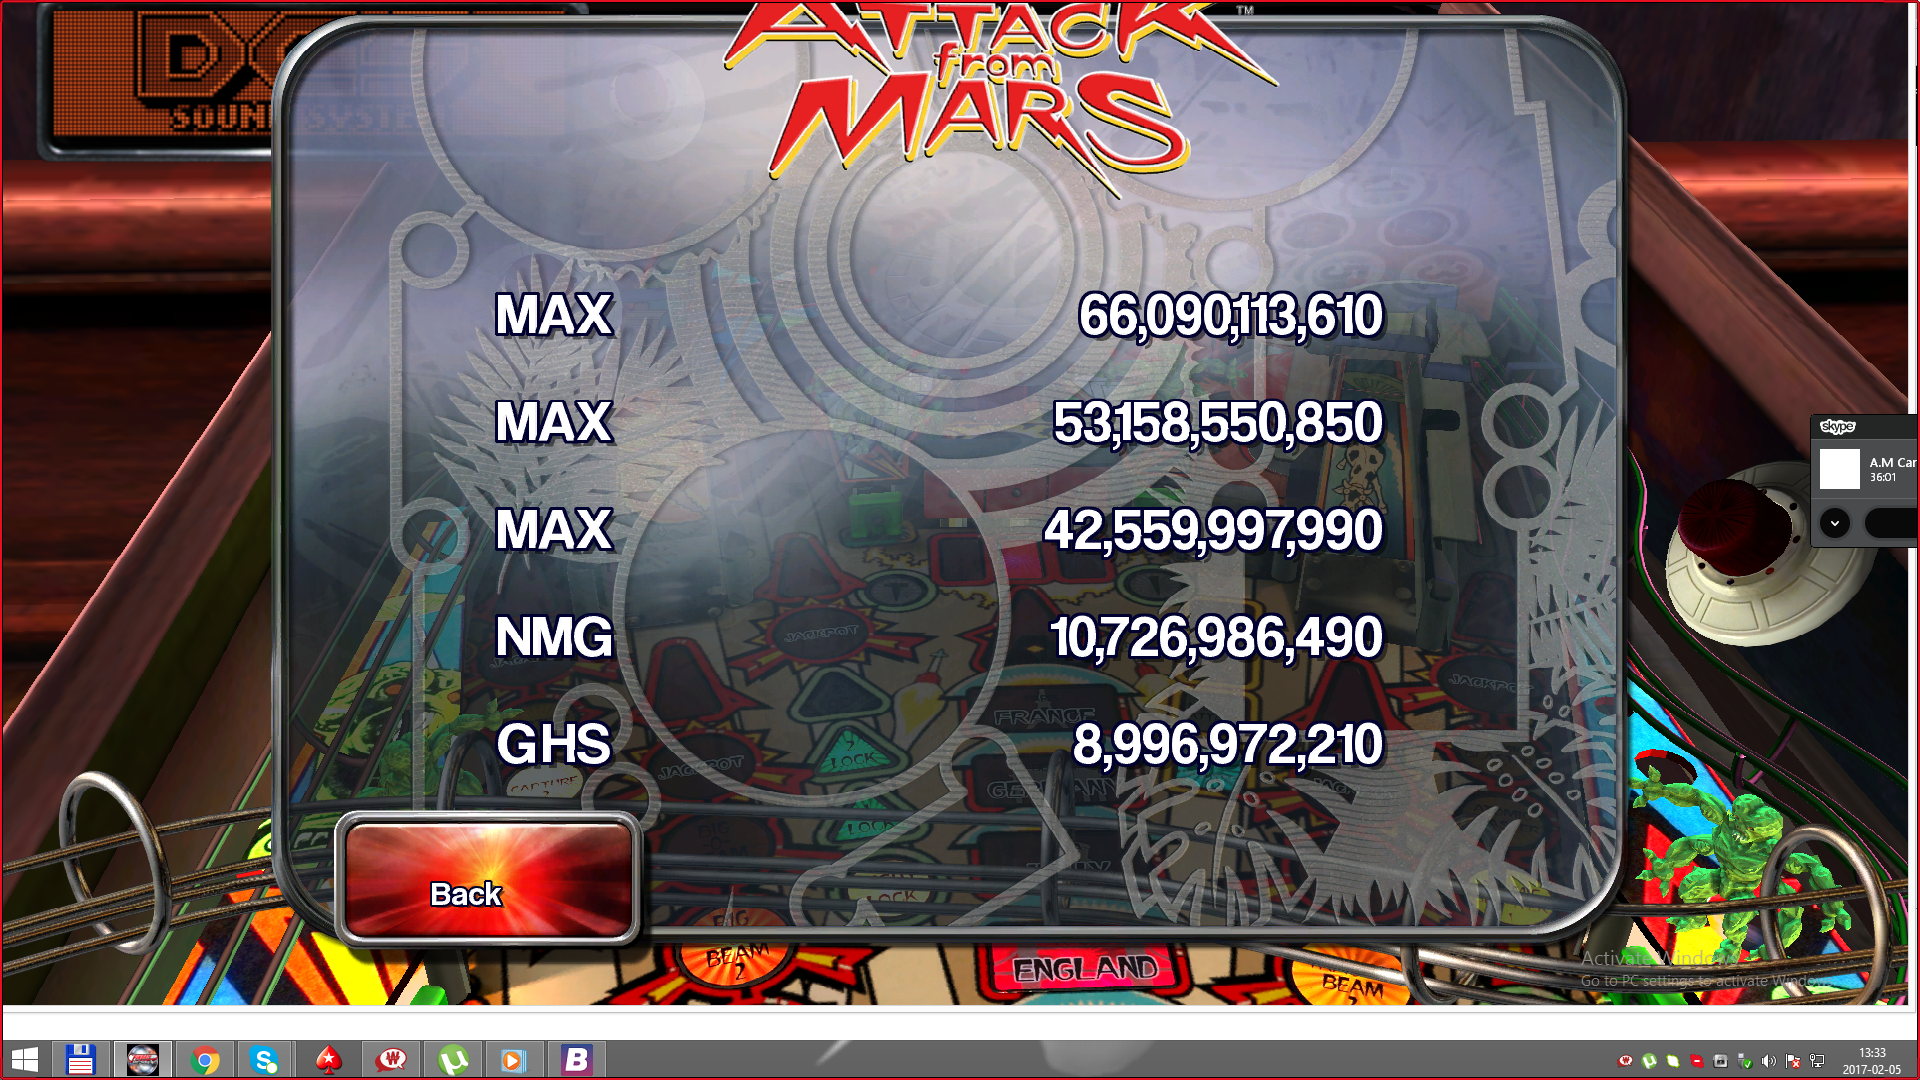 maxgreat: Pinball Arcade: Attack From Mars (PC) 66,090,113,610 points on 2017-02-05 06:34:30